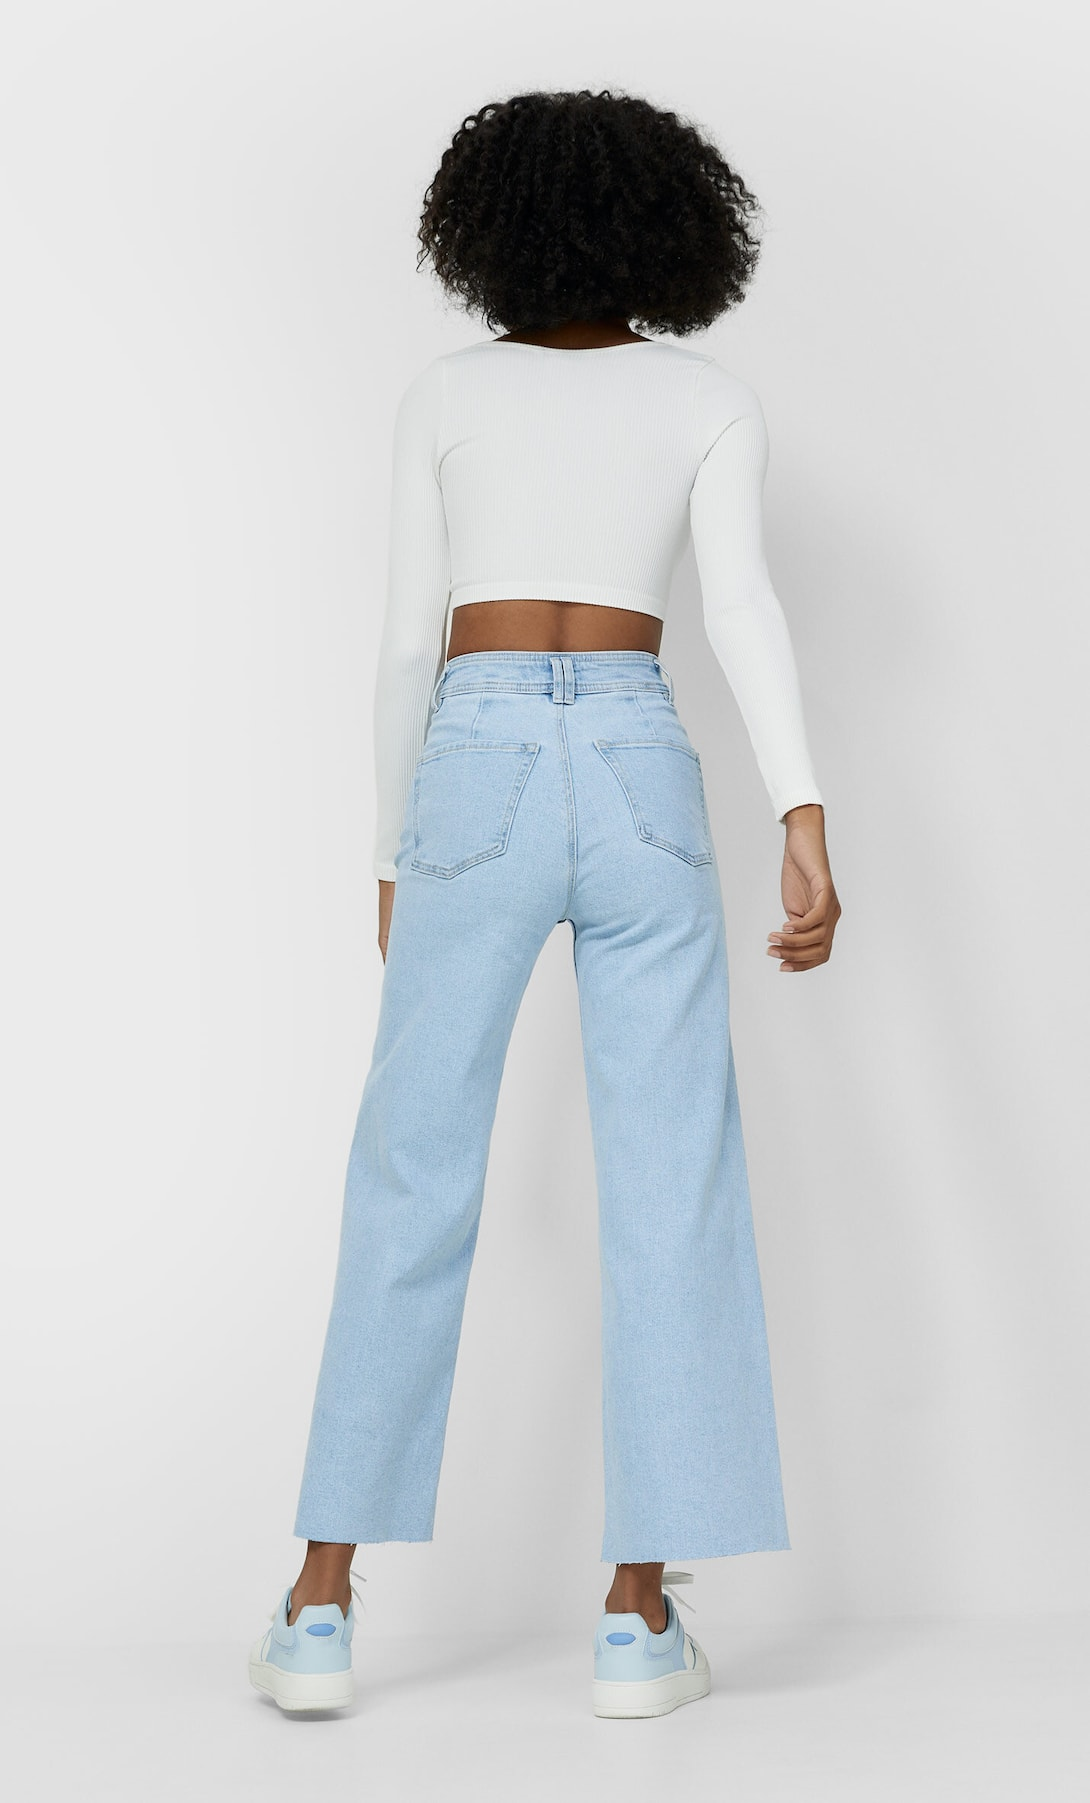 Jeans For Women Skinny High Waisted Stretch Pants Woman